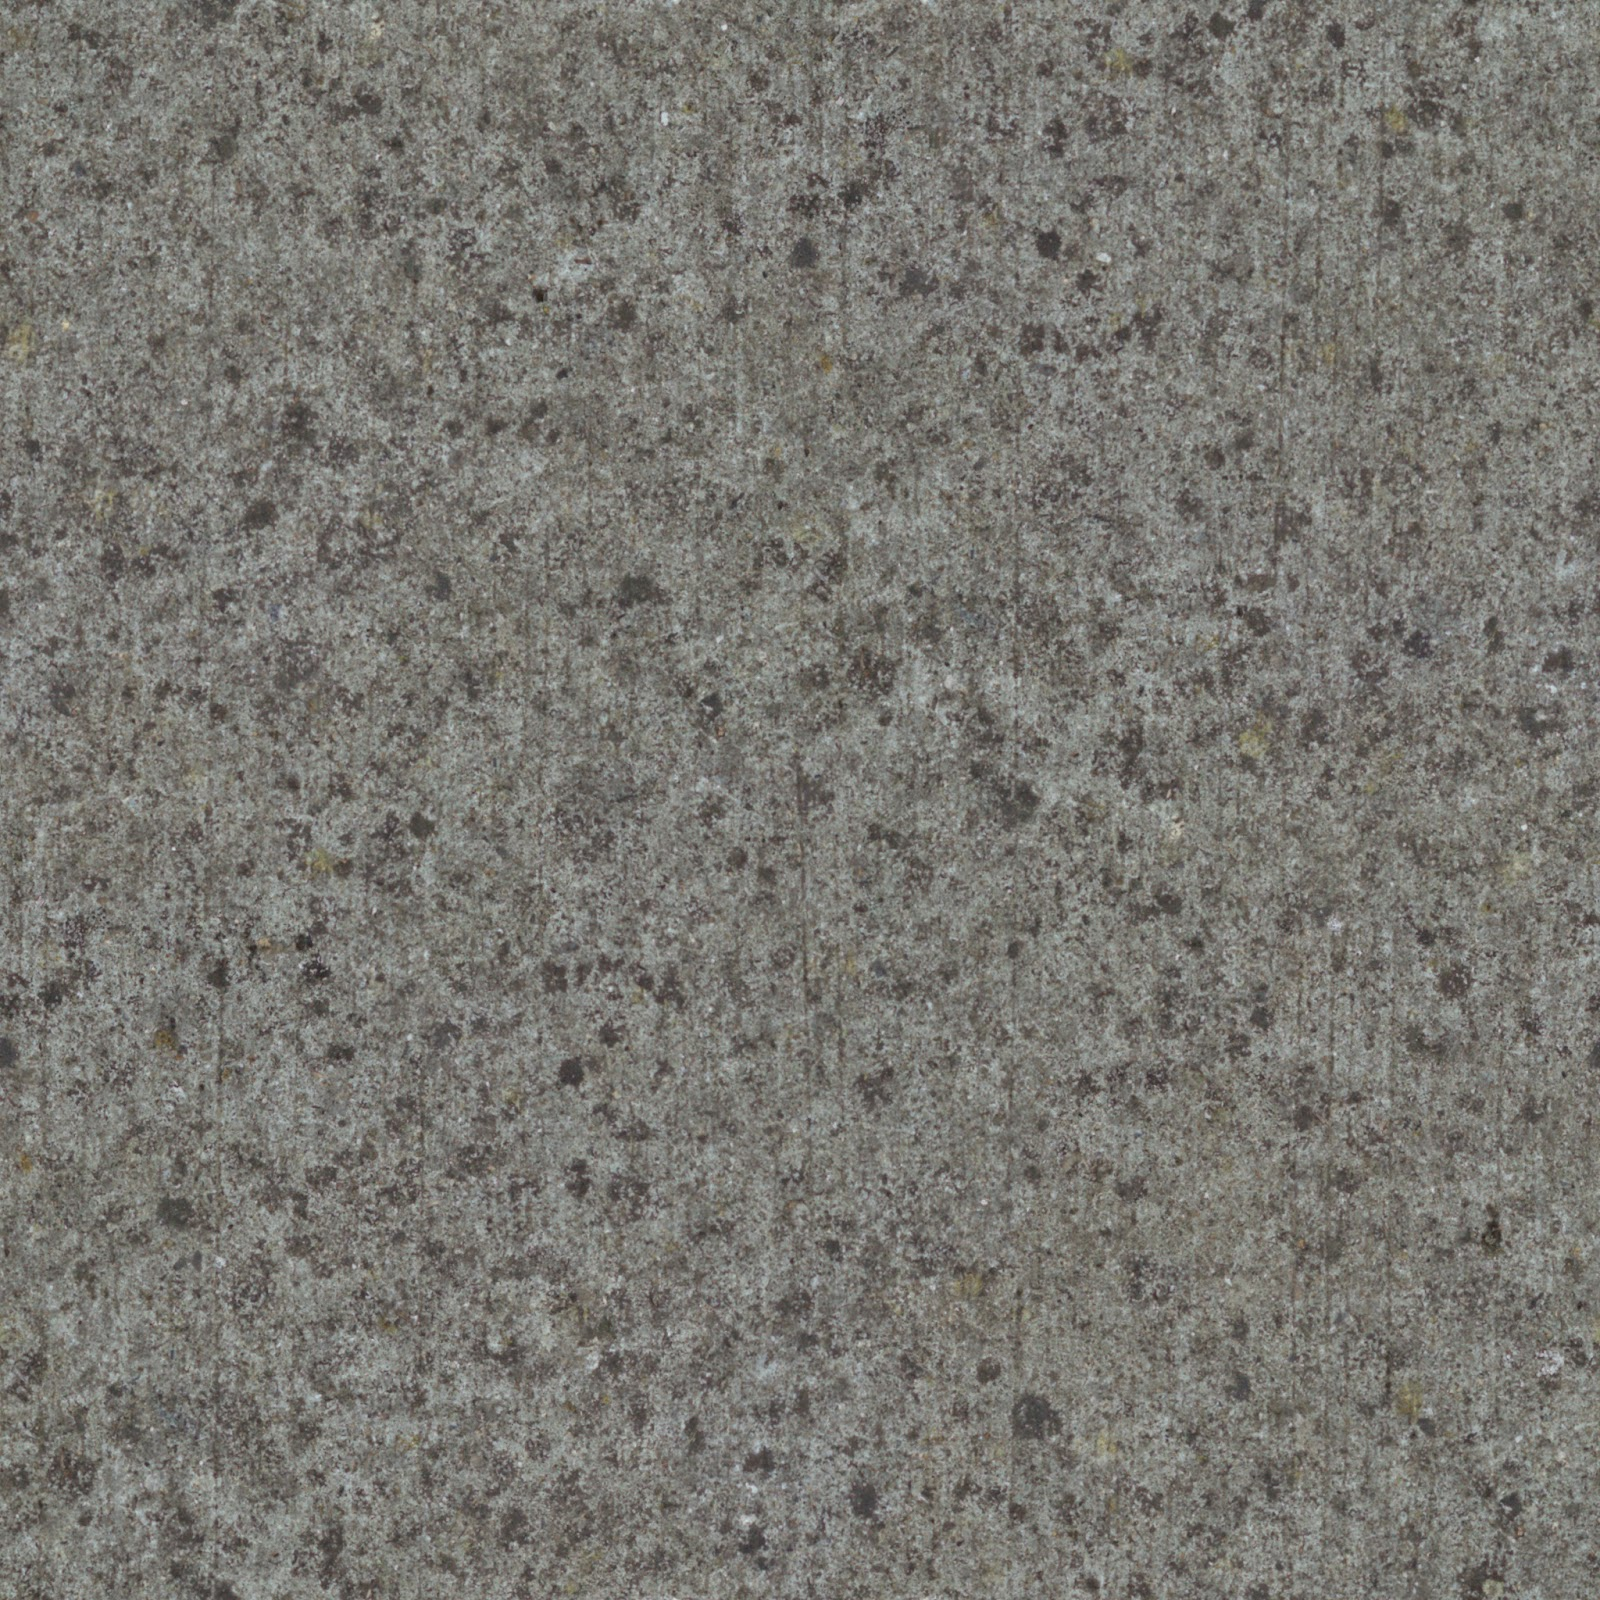 (Concrete 20) Beautiful granite concrete stone seamless texture 2048x2048